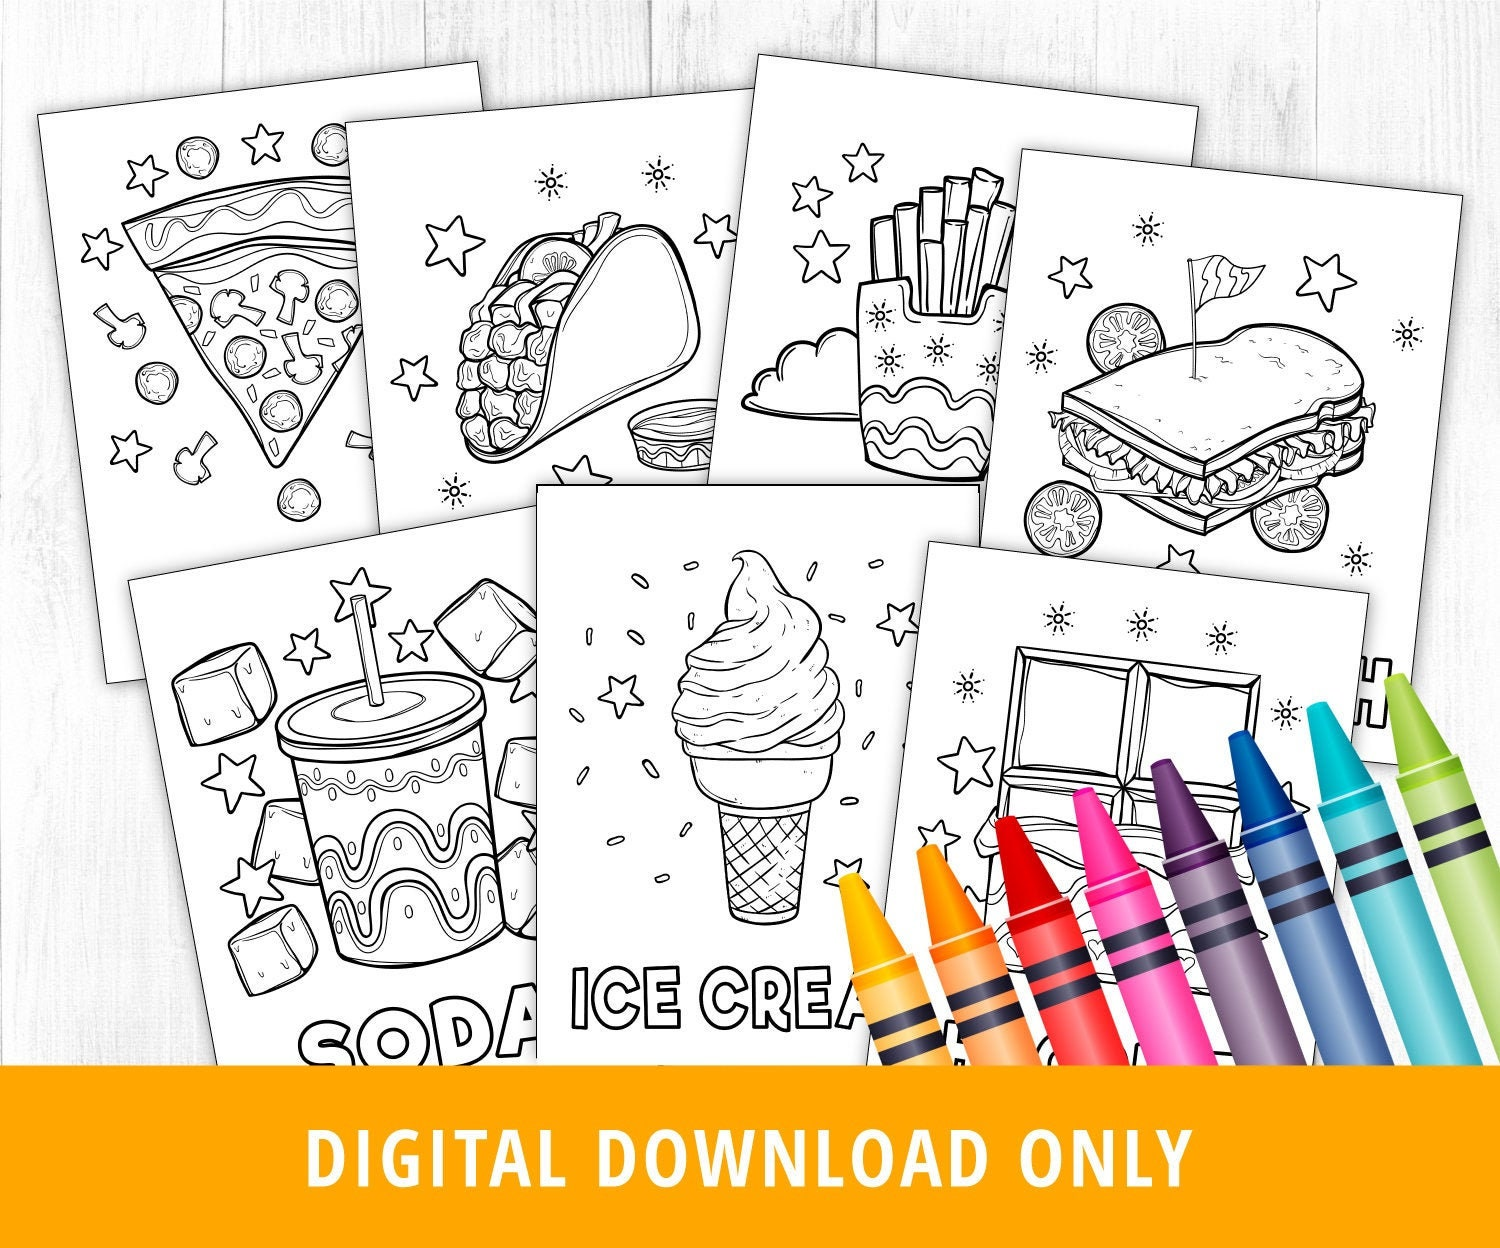 Fast Food Coloring Pages, Food Coloring Pages, Printable Coloring Pages,  Junk Food, Burger, Hot Dog, Pizza, Ice Cream, Soda, Taco, DIGITAL